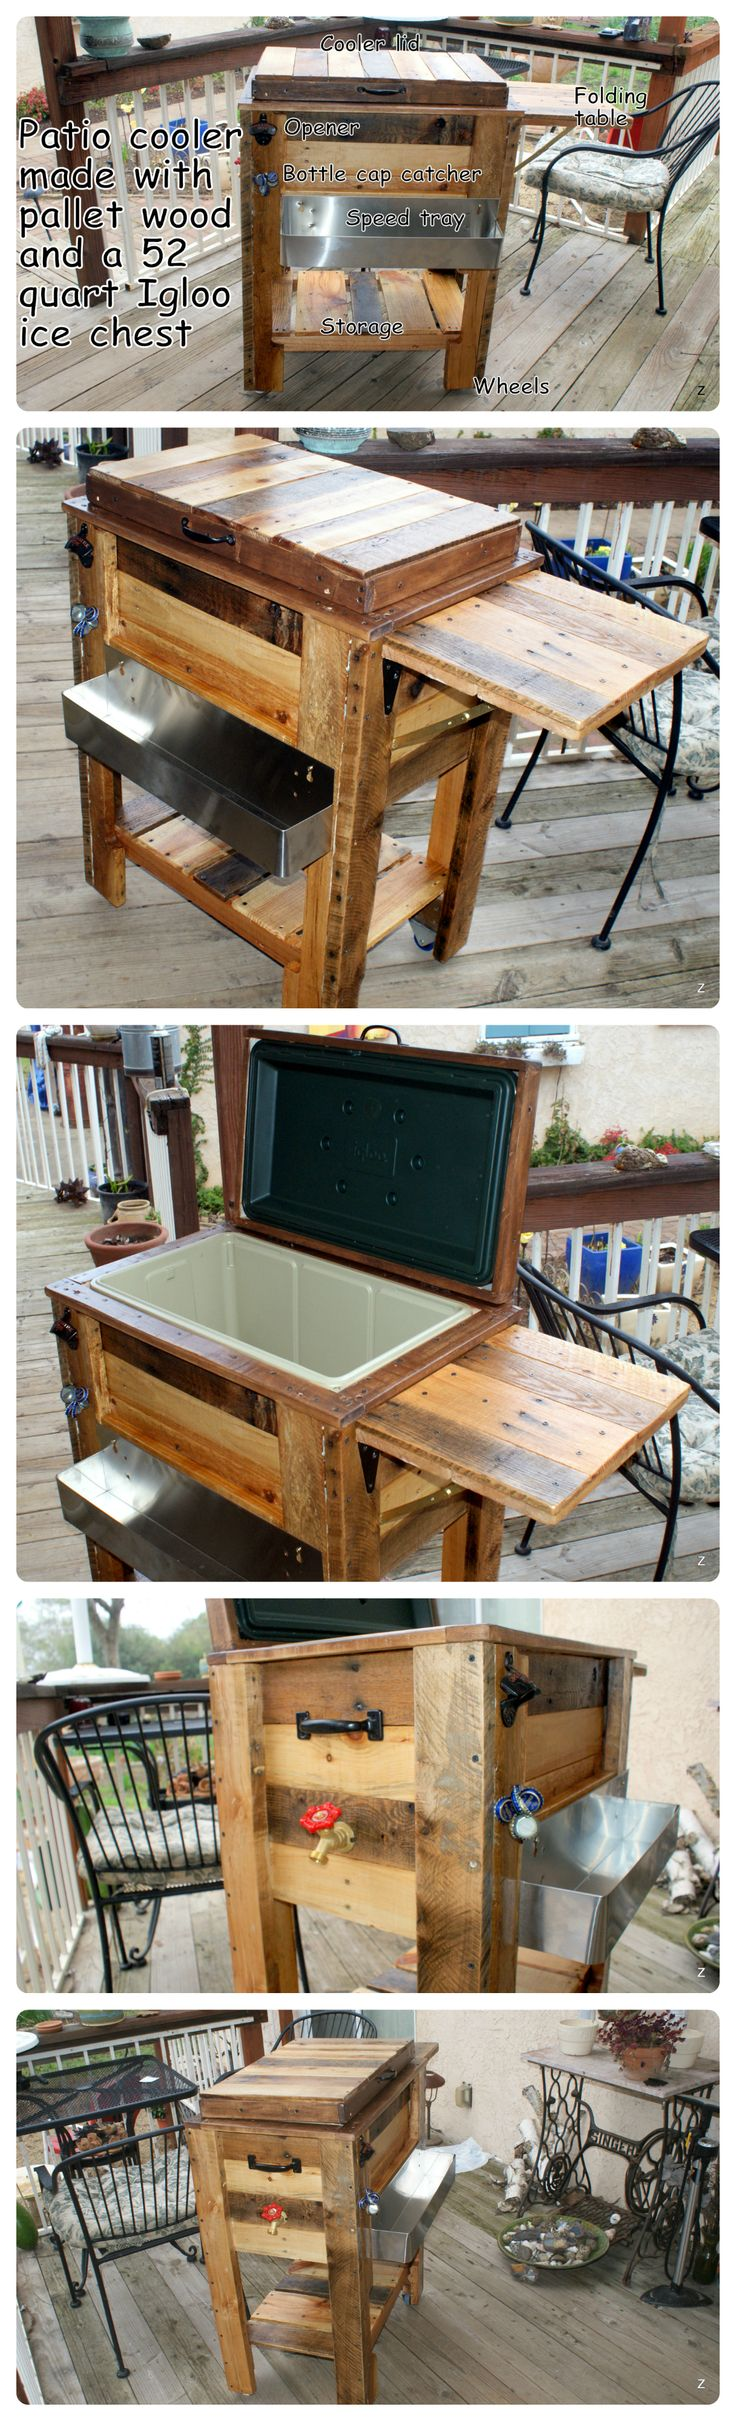 Patio Cooler from upcycled pallet wood and Igloo cooler.